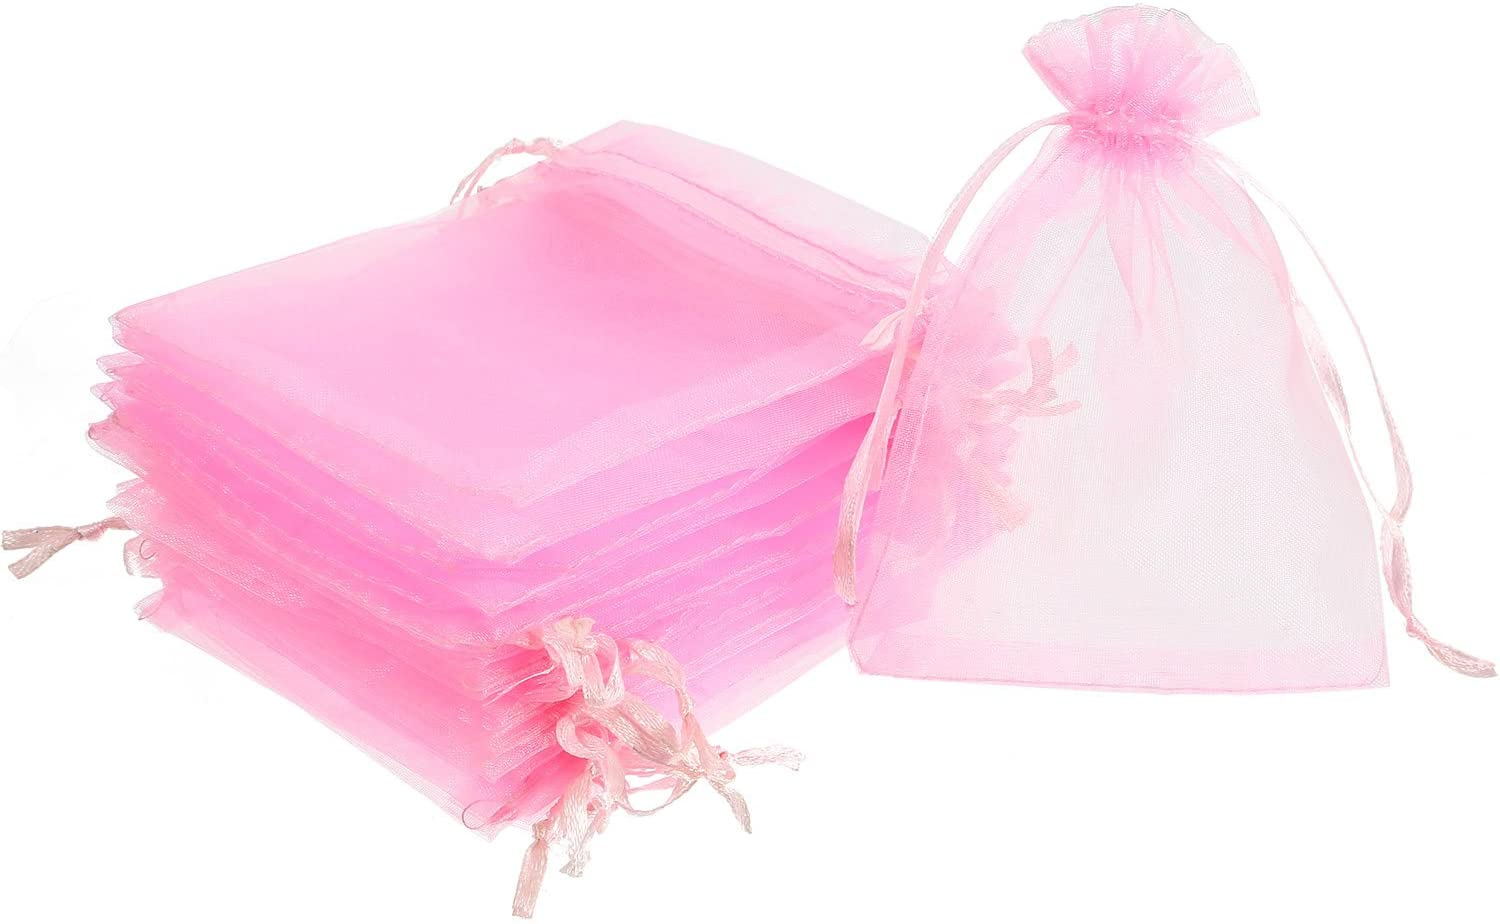 Mudder 50 Pack Organza Gift Bags Wedding Party Favor Bags Jewelry Pouches Wrap, 4 x 4.72 Inches (Pink)